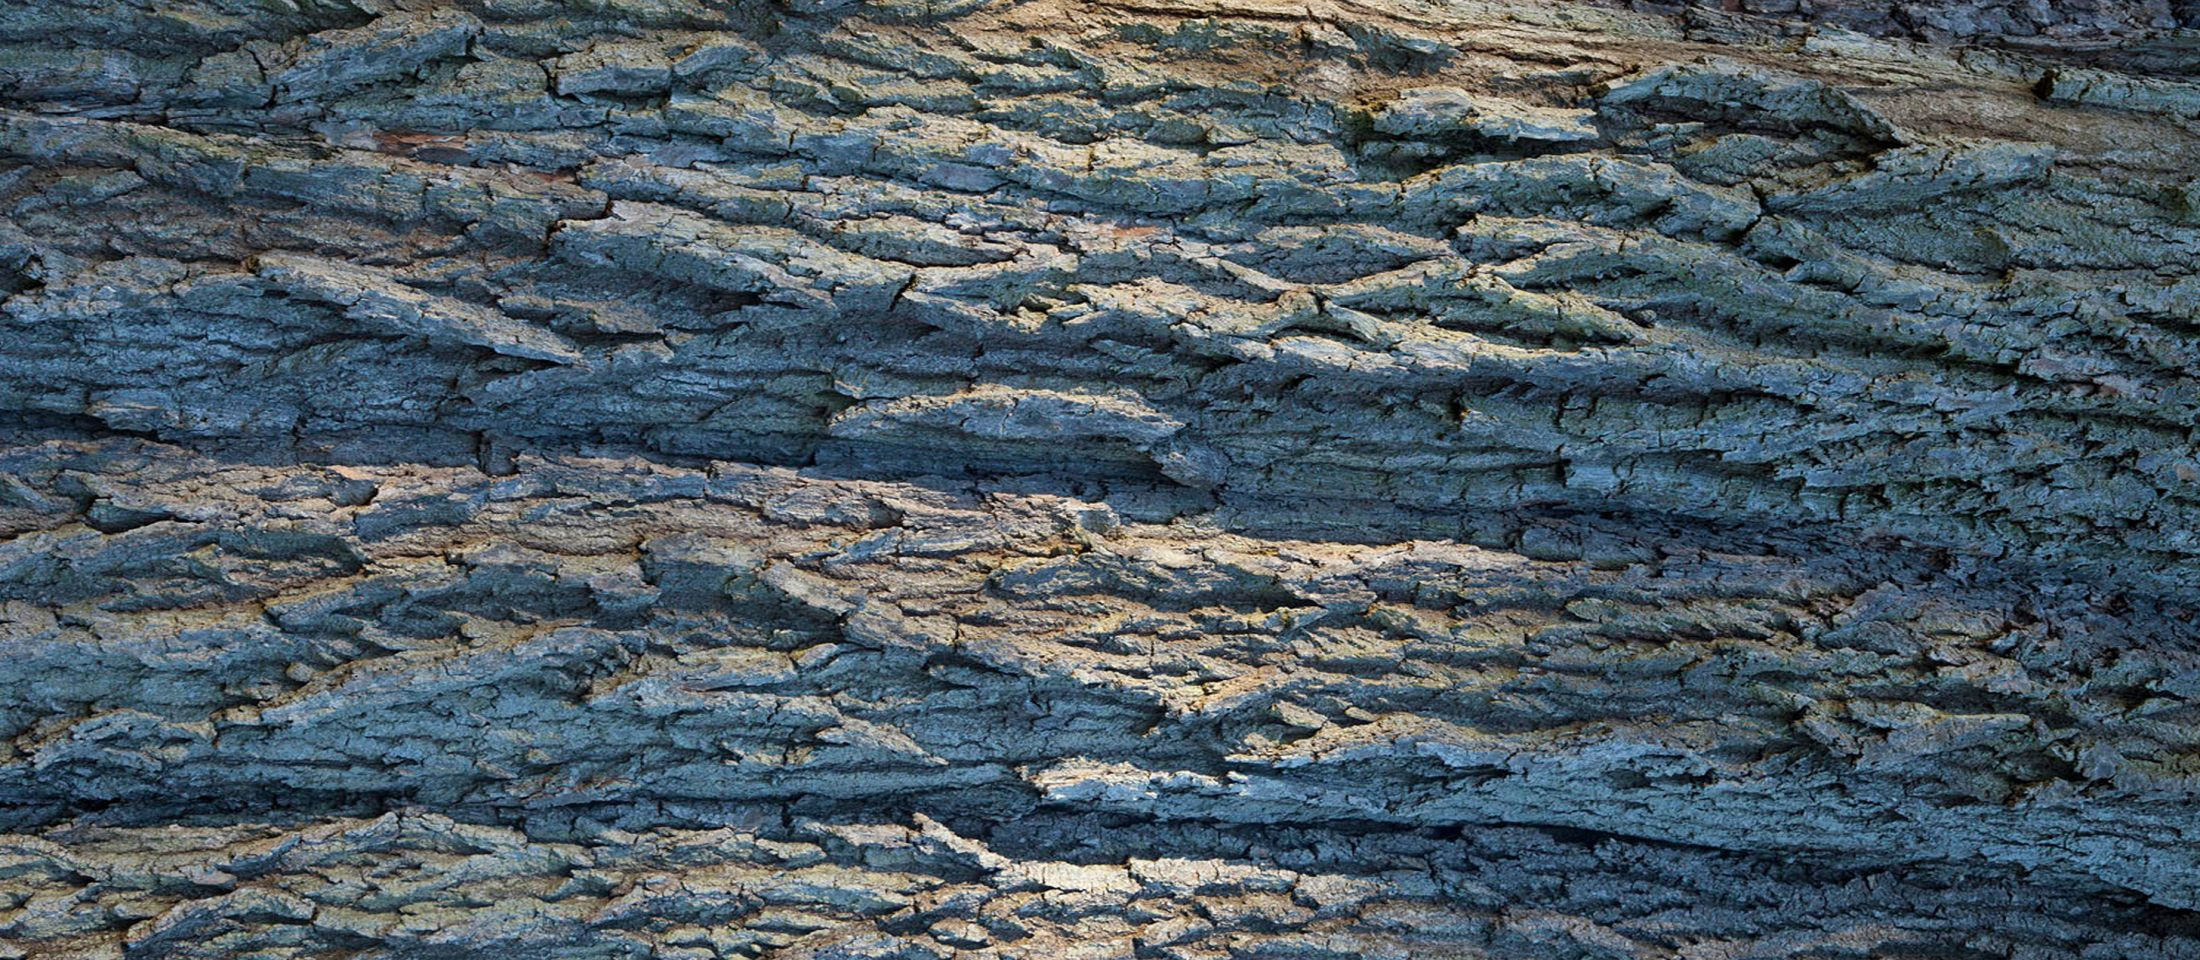 Bark from an ash tree near Ightham Mote and Knole in Kent. Photo: John Miller.